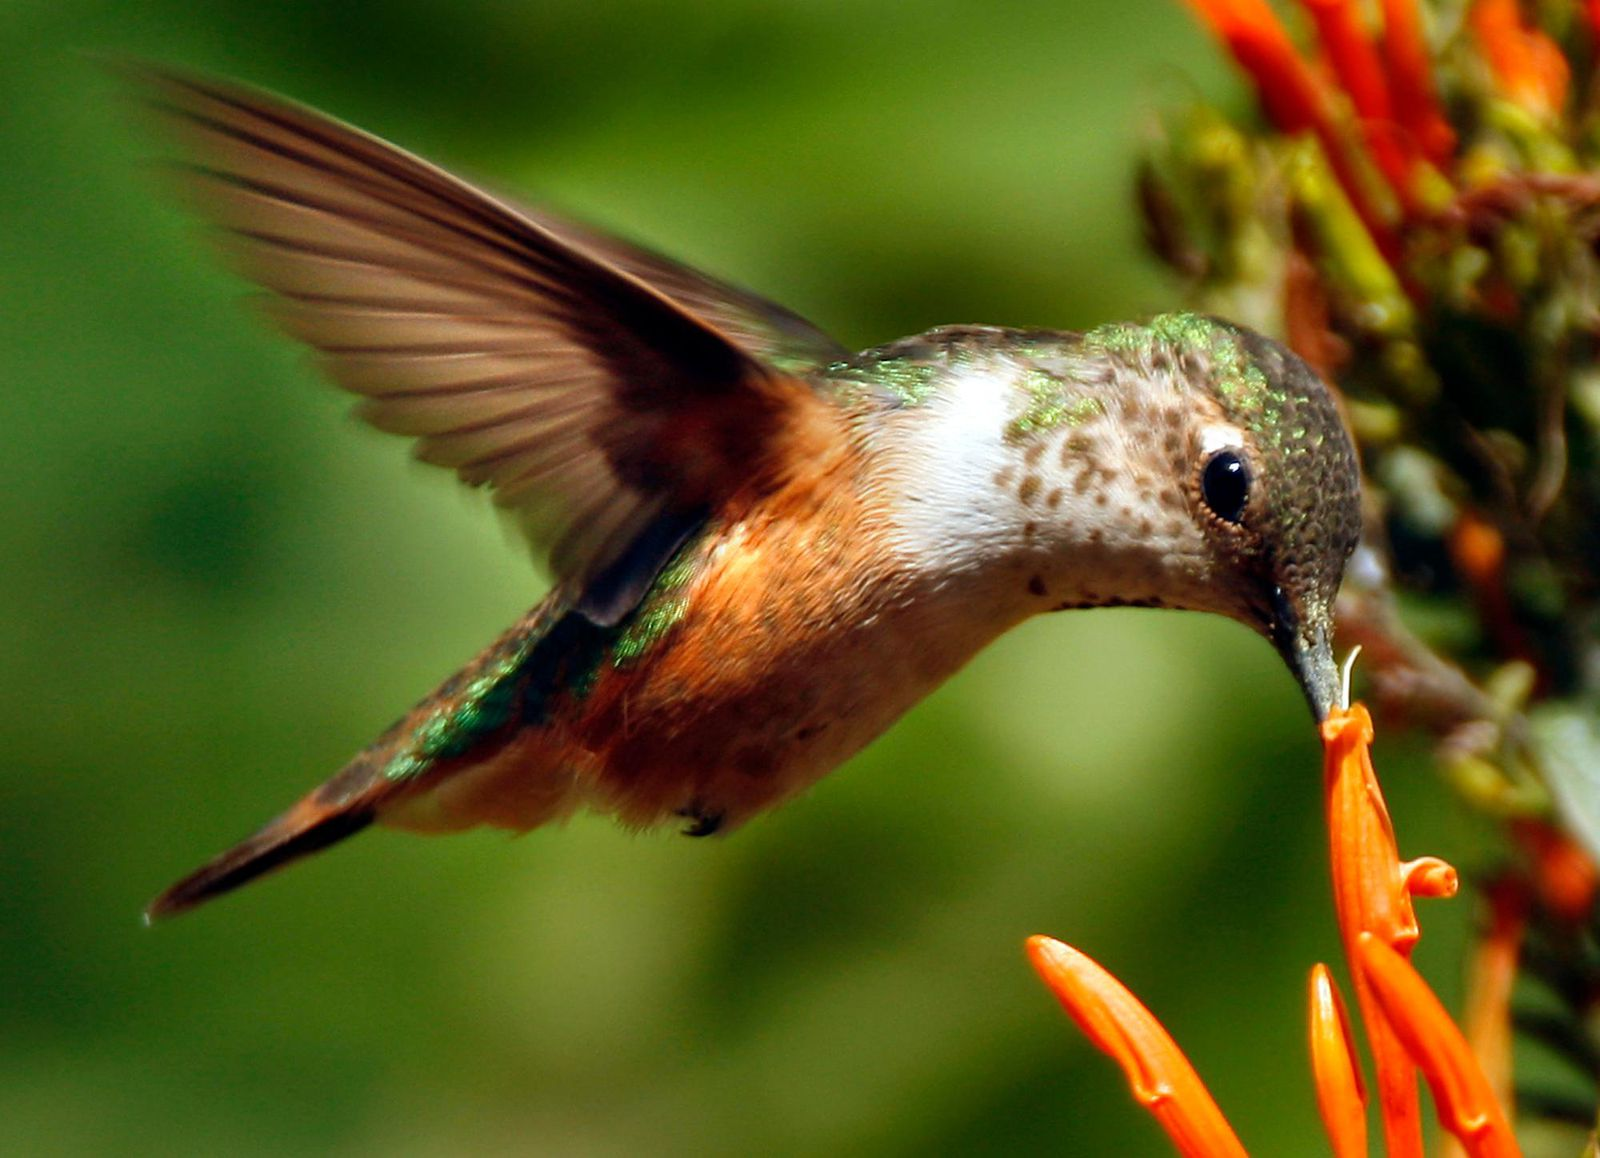 Hummingbirds Learn to Count to Find Their Favorite Flowers